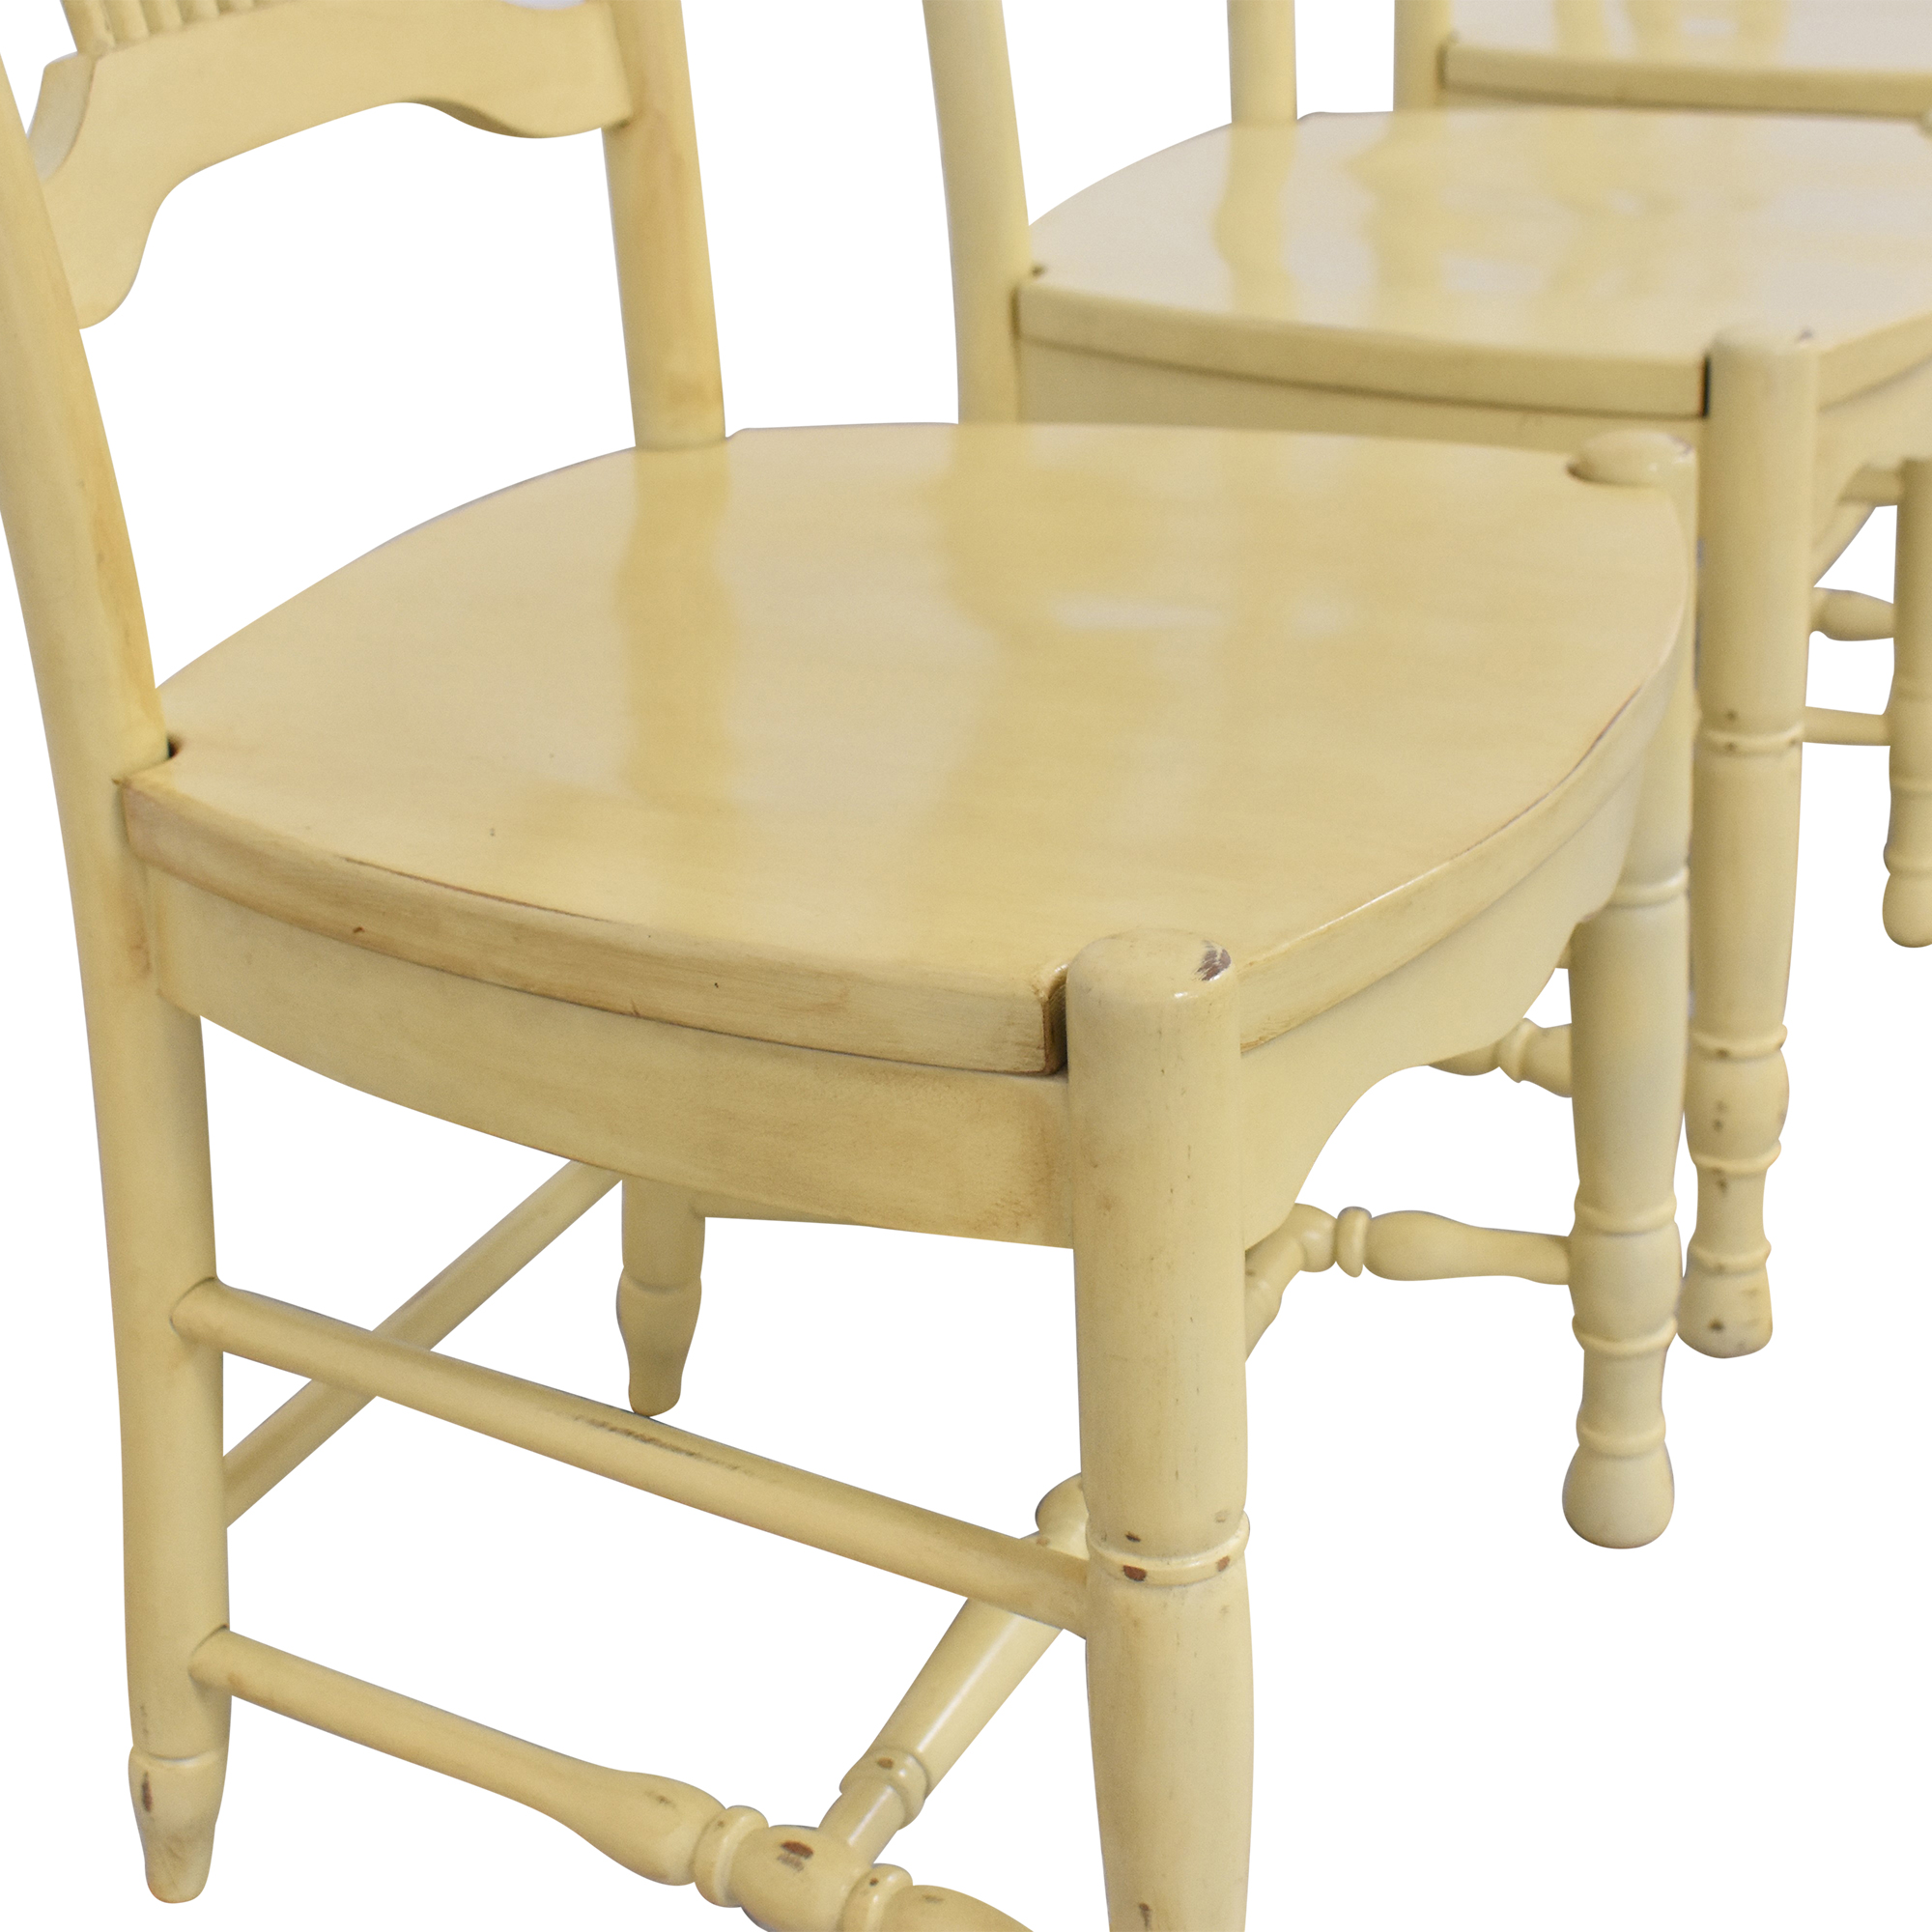 Ethan Allen Ethan Allen Wheat Back Dining Chairs dimensions